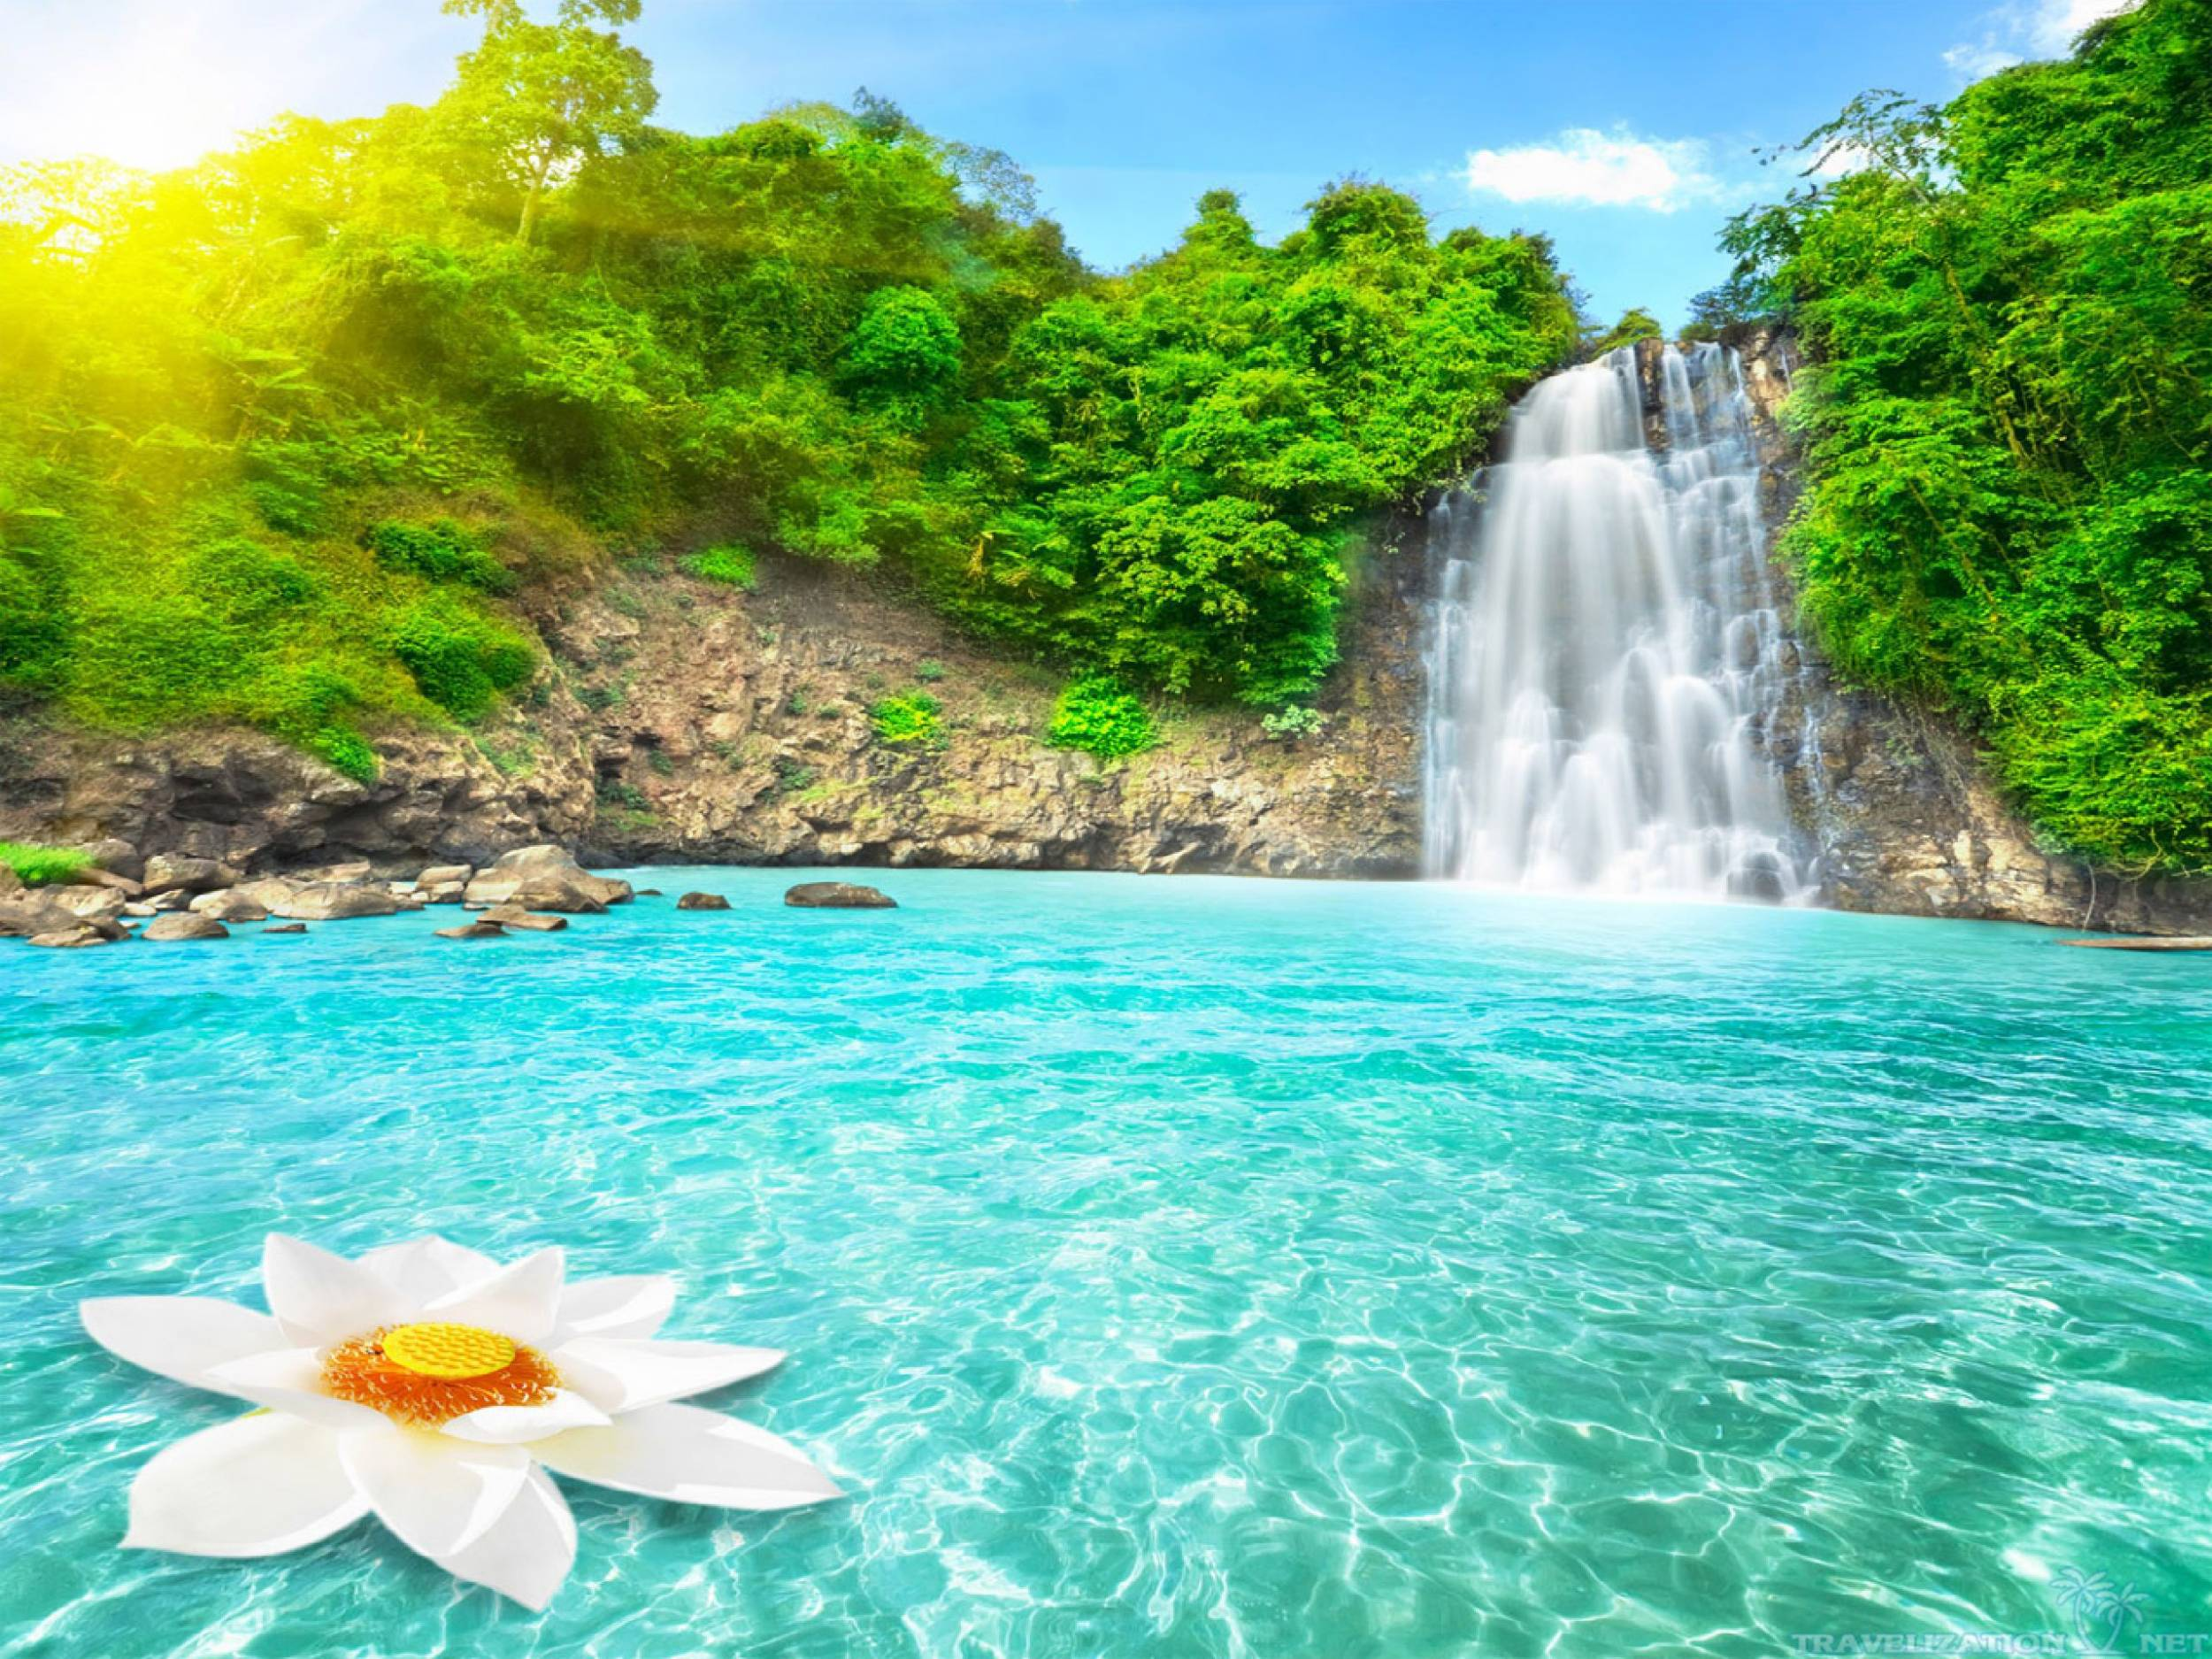 Paradise desktop wallpapers top free paradise desktop backgrounds wallpaperaccess - Paradise pictures backgrounds ...